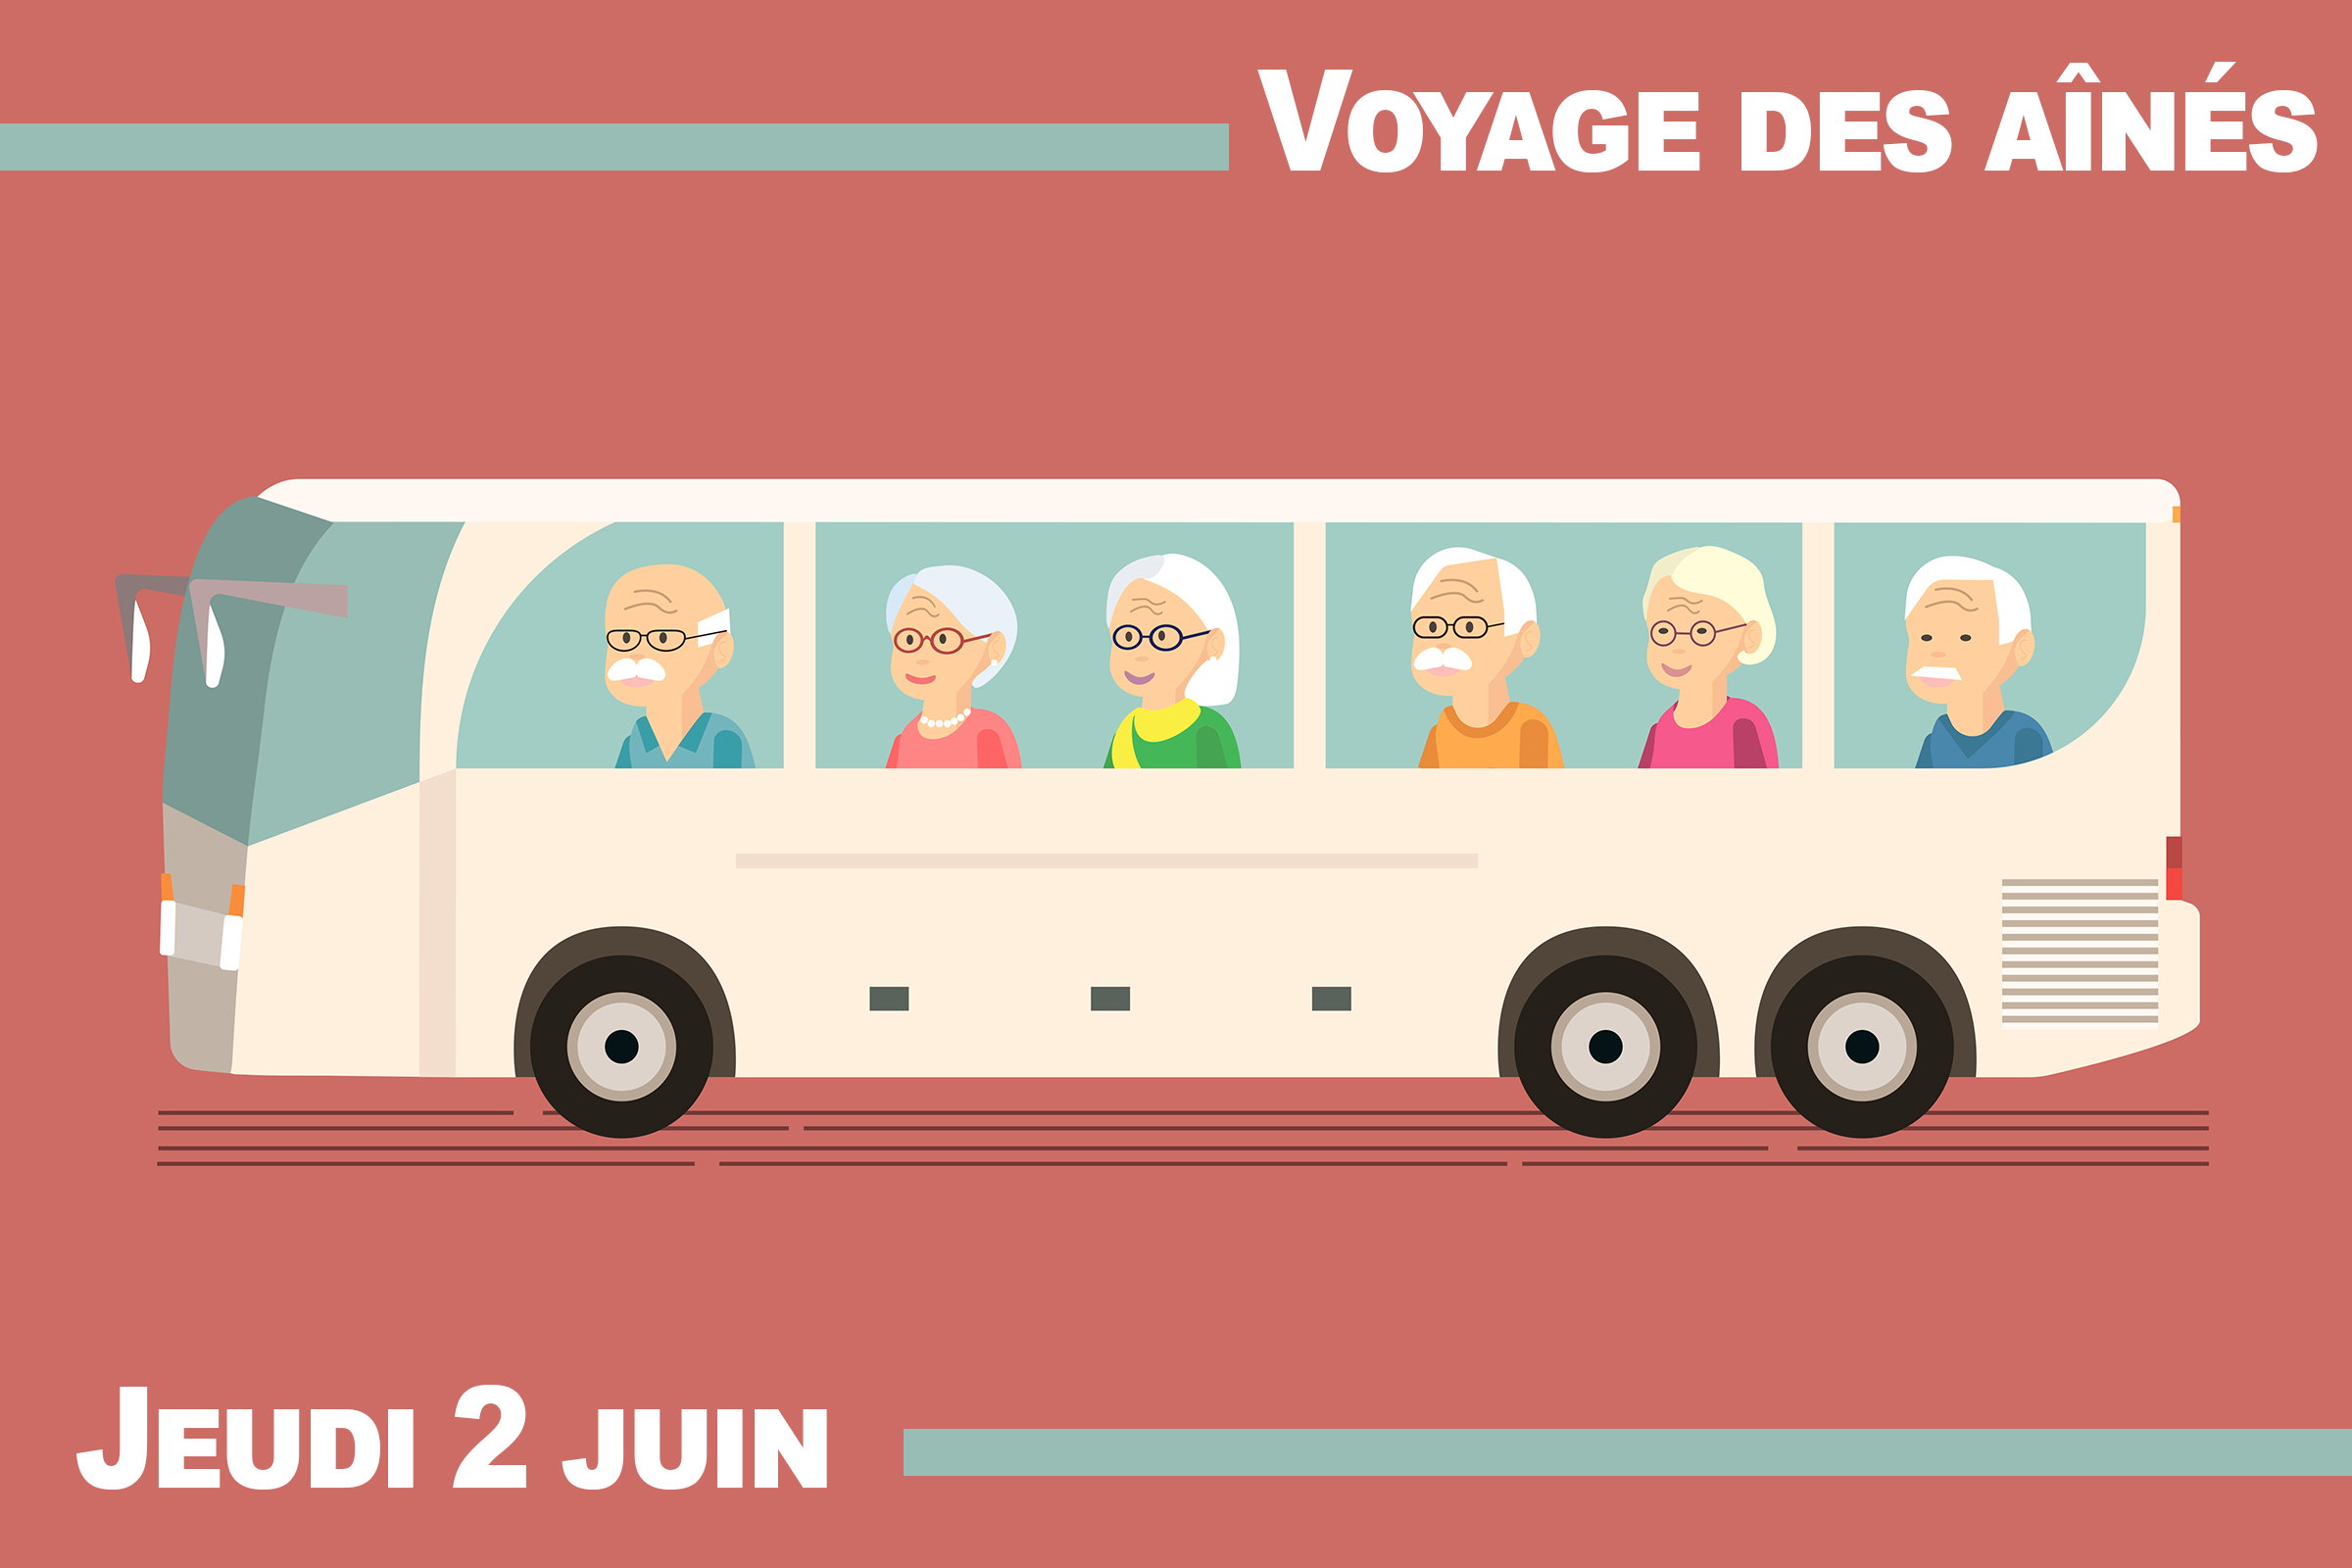 ban voyage aines